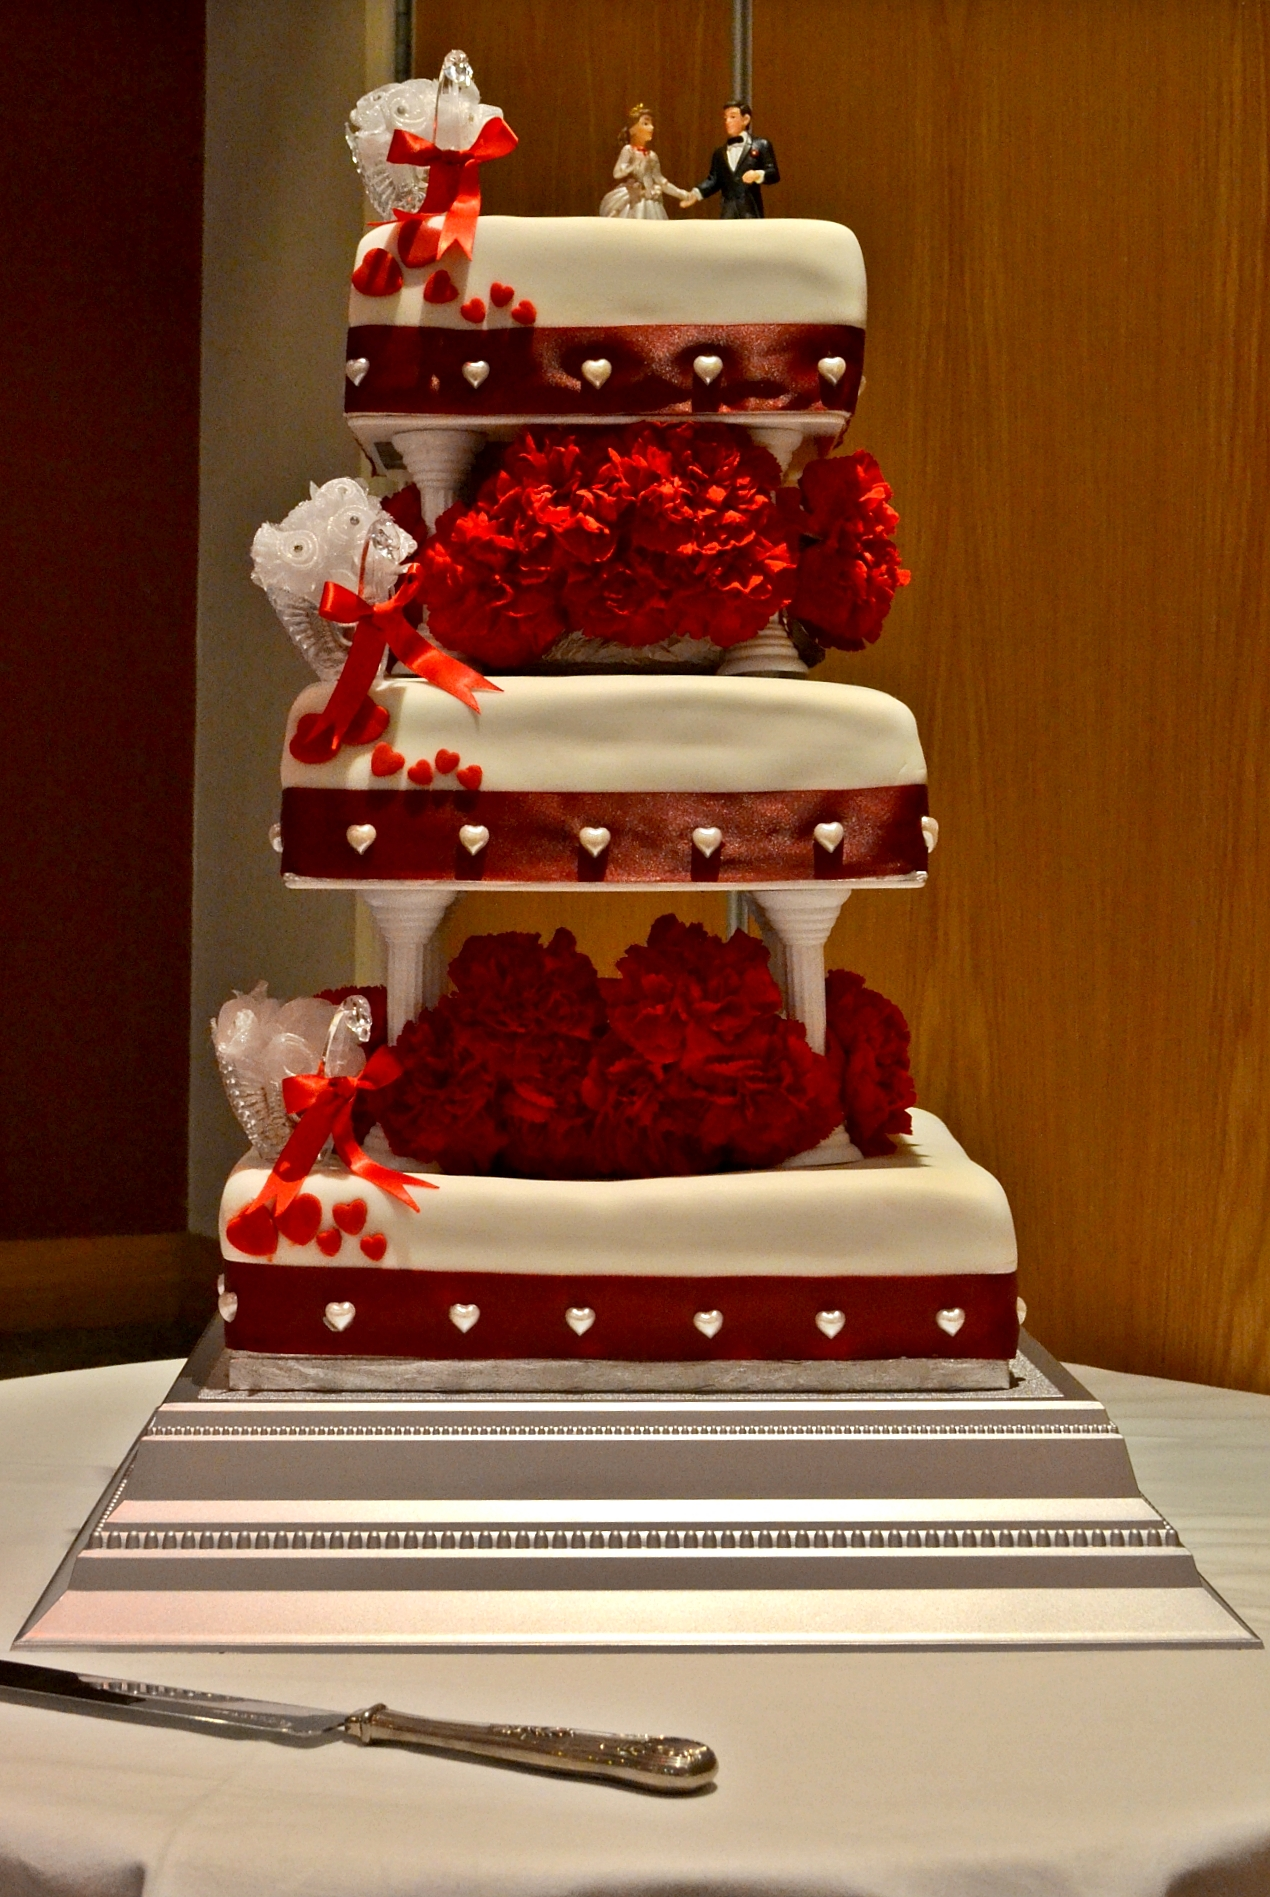 Les Plaisirs 3-tier square wedding cake with red carnations